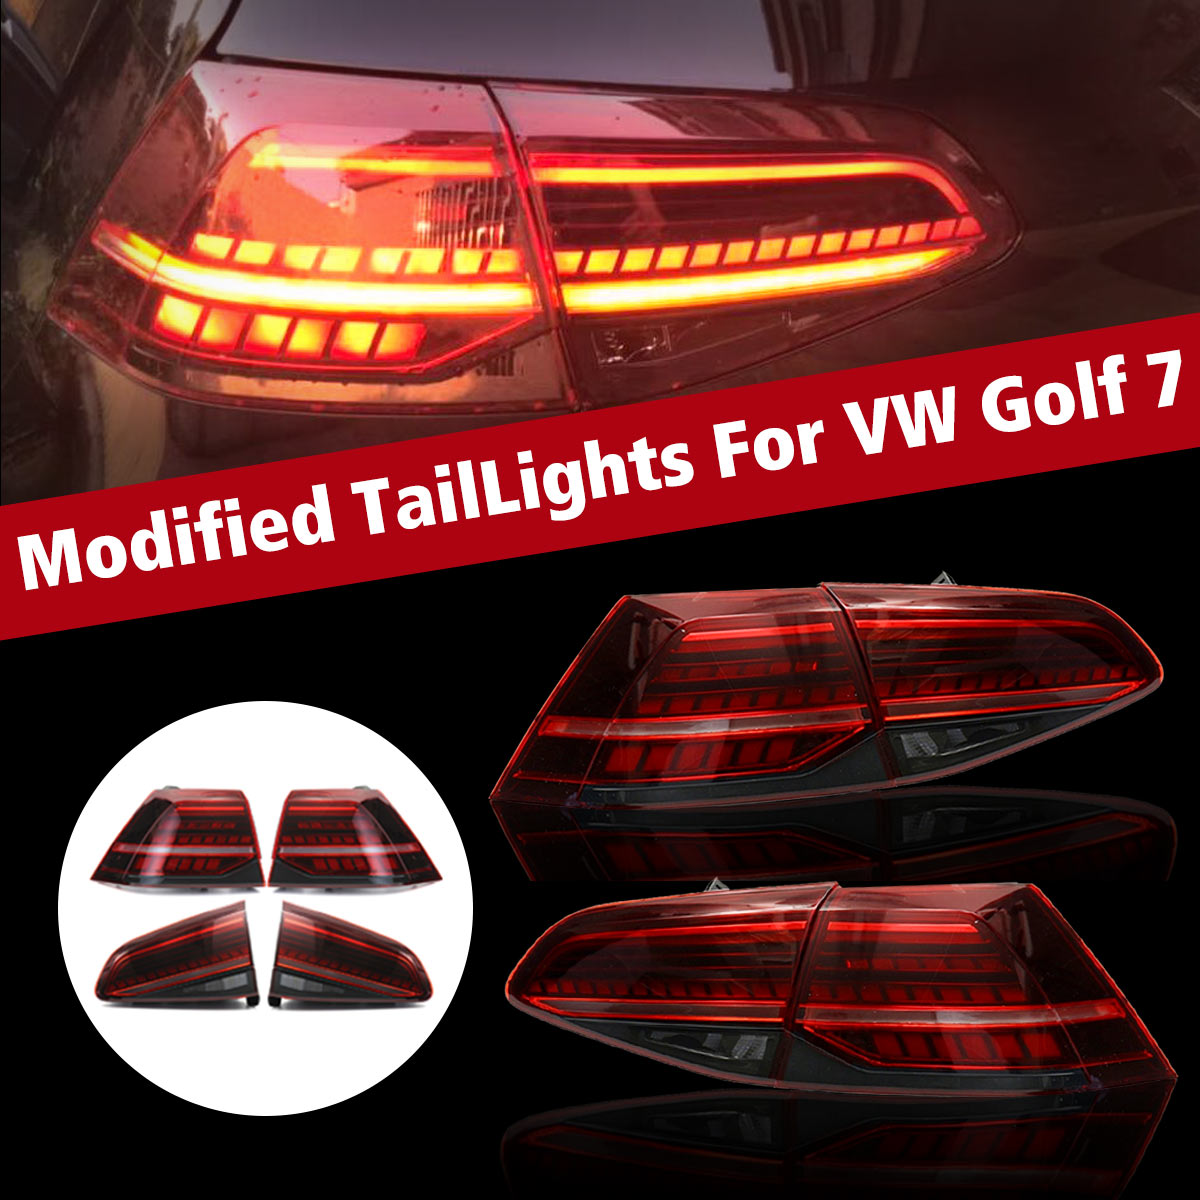 LED Tail Light for VW Golf 7 MK7 Golf7 Golf7.5 MK7.5 MK 7 Car Styling Taillights Tail Lights LED Rear Lamp taillight Automobile